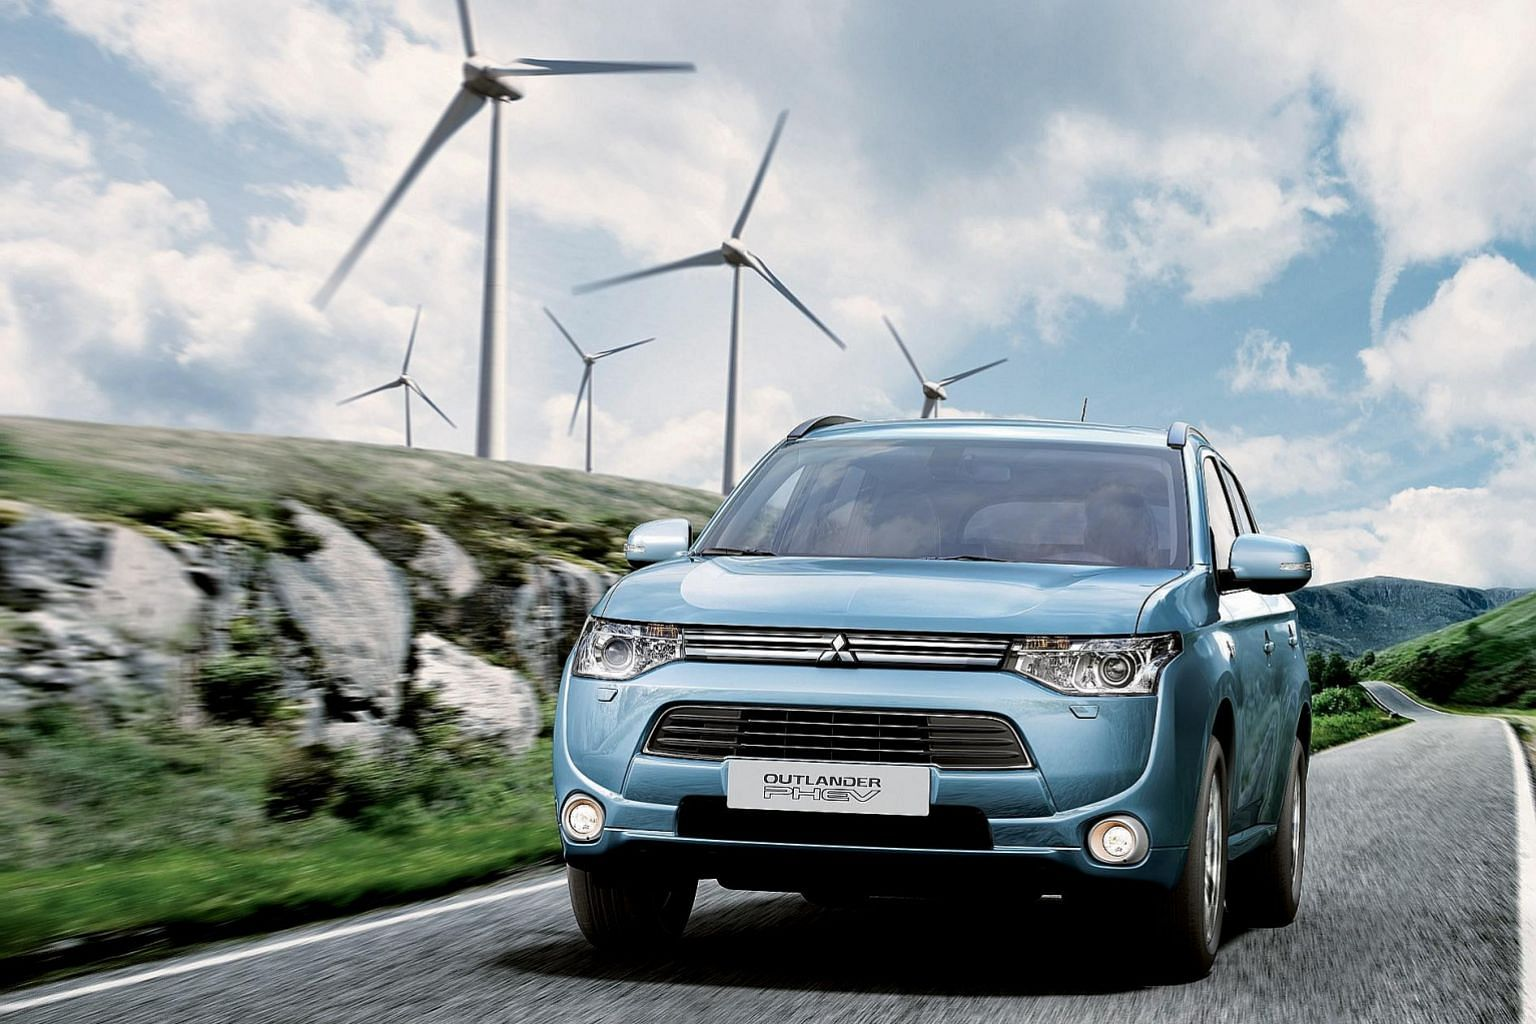 The Outlander PHEV is the world's first petrol-electric 4x4 which you can charge via a wall socket.